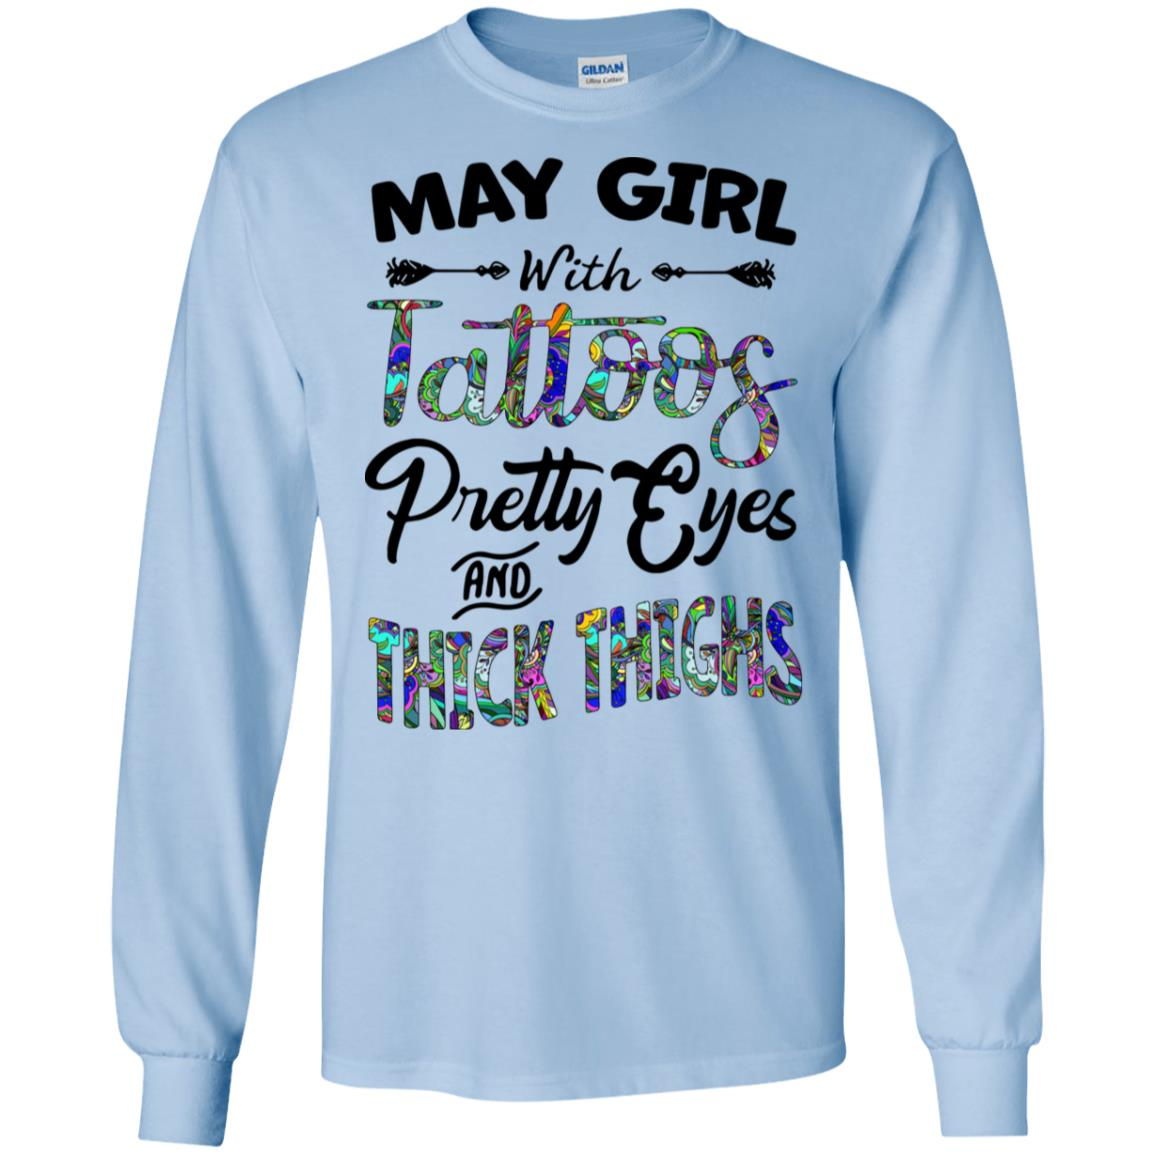 8afcfc77c May girl with tattoos pretty eyes and thick thighs hoodie, tank, t shirt